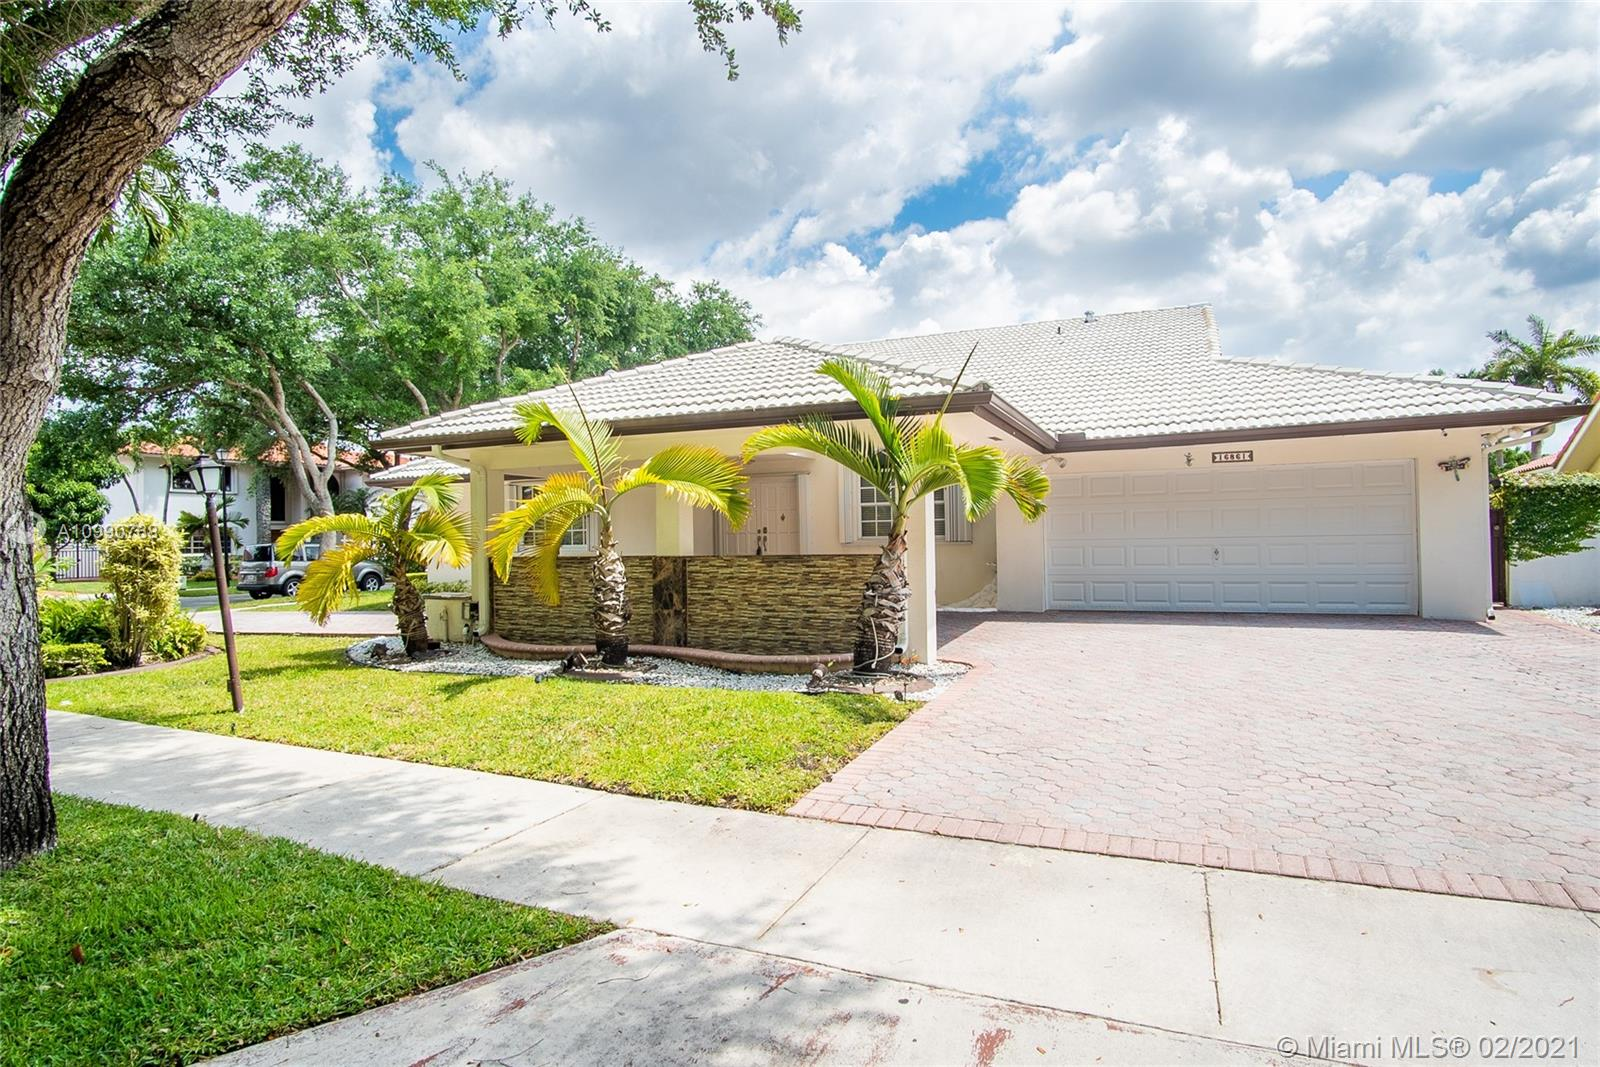 Miami Lakes - 16861 NW 79th Pl, Miami Lakes, FL 33016